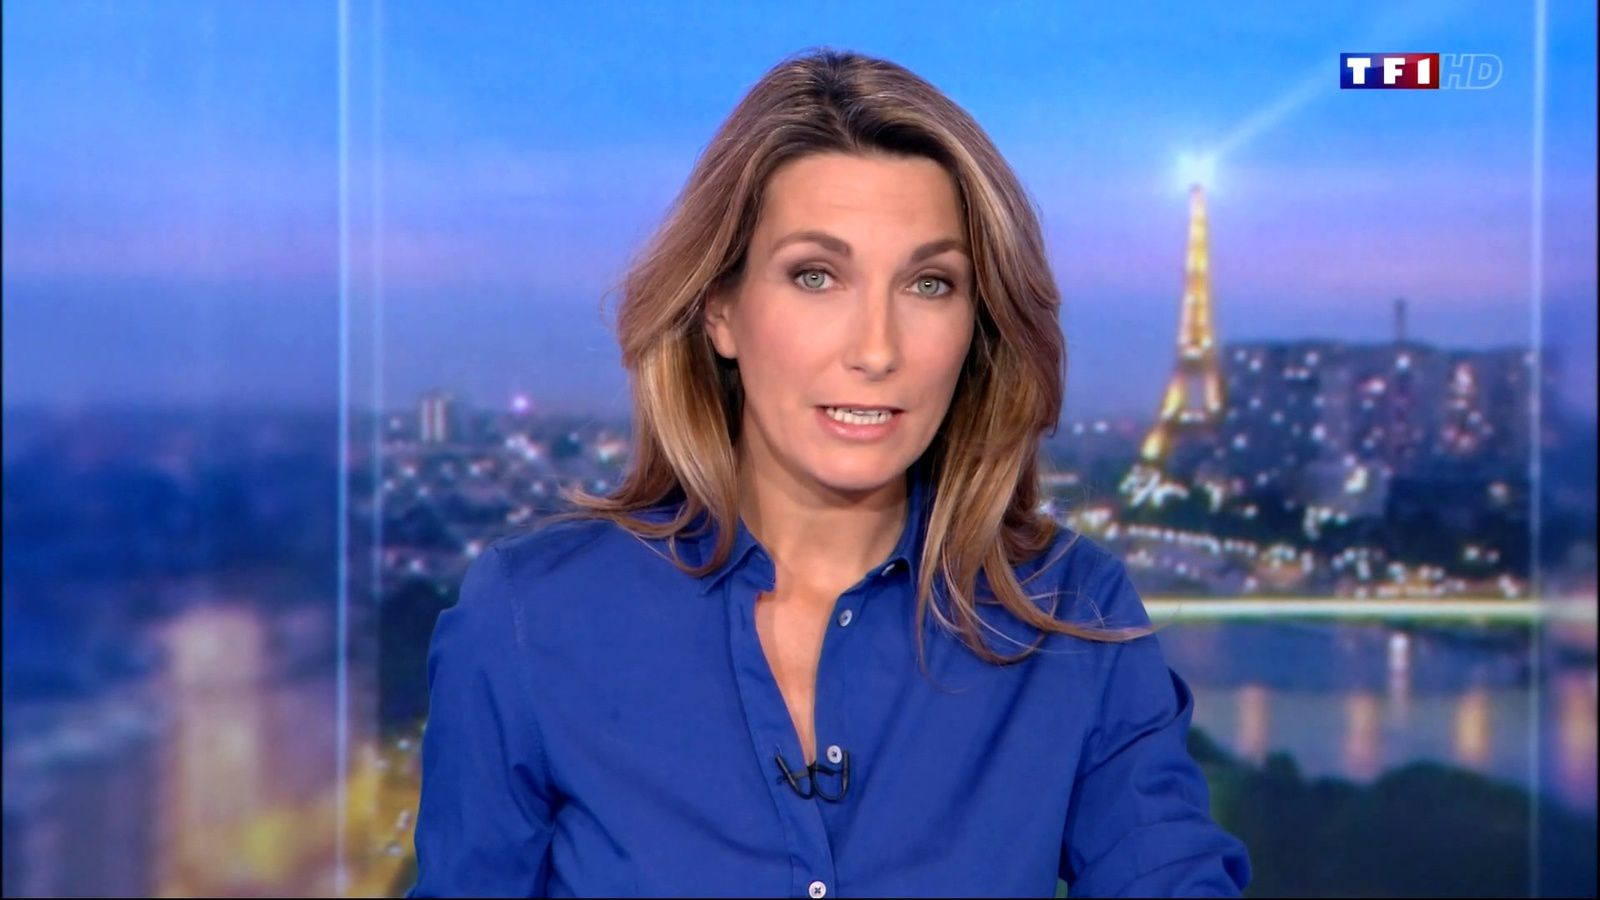 Anne-Claire Coudray 18-10-2015 20h - ressemblance frappante